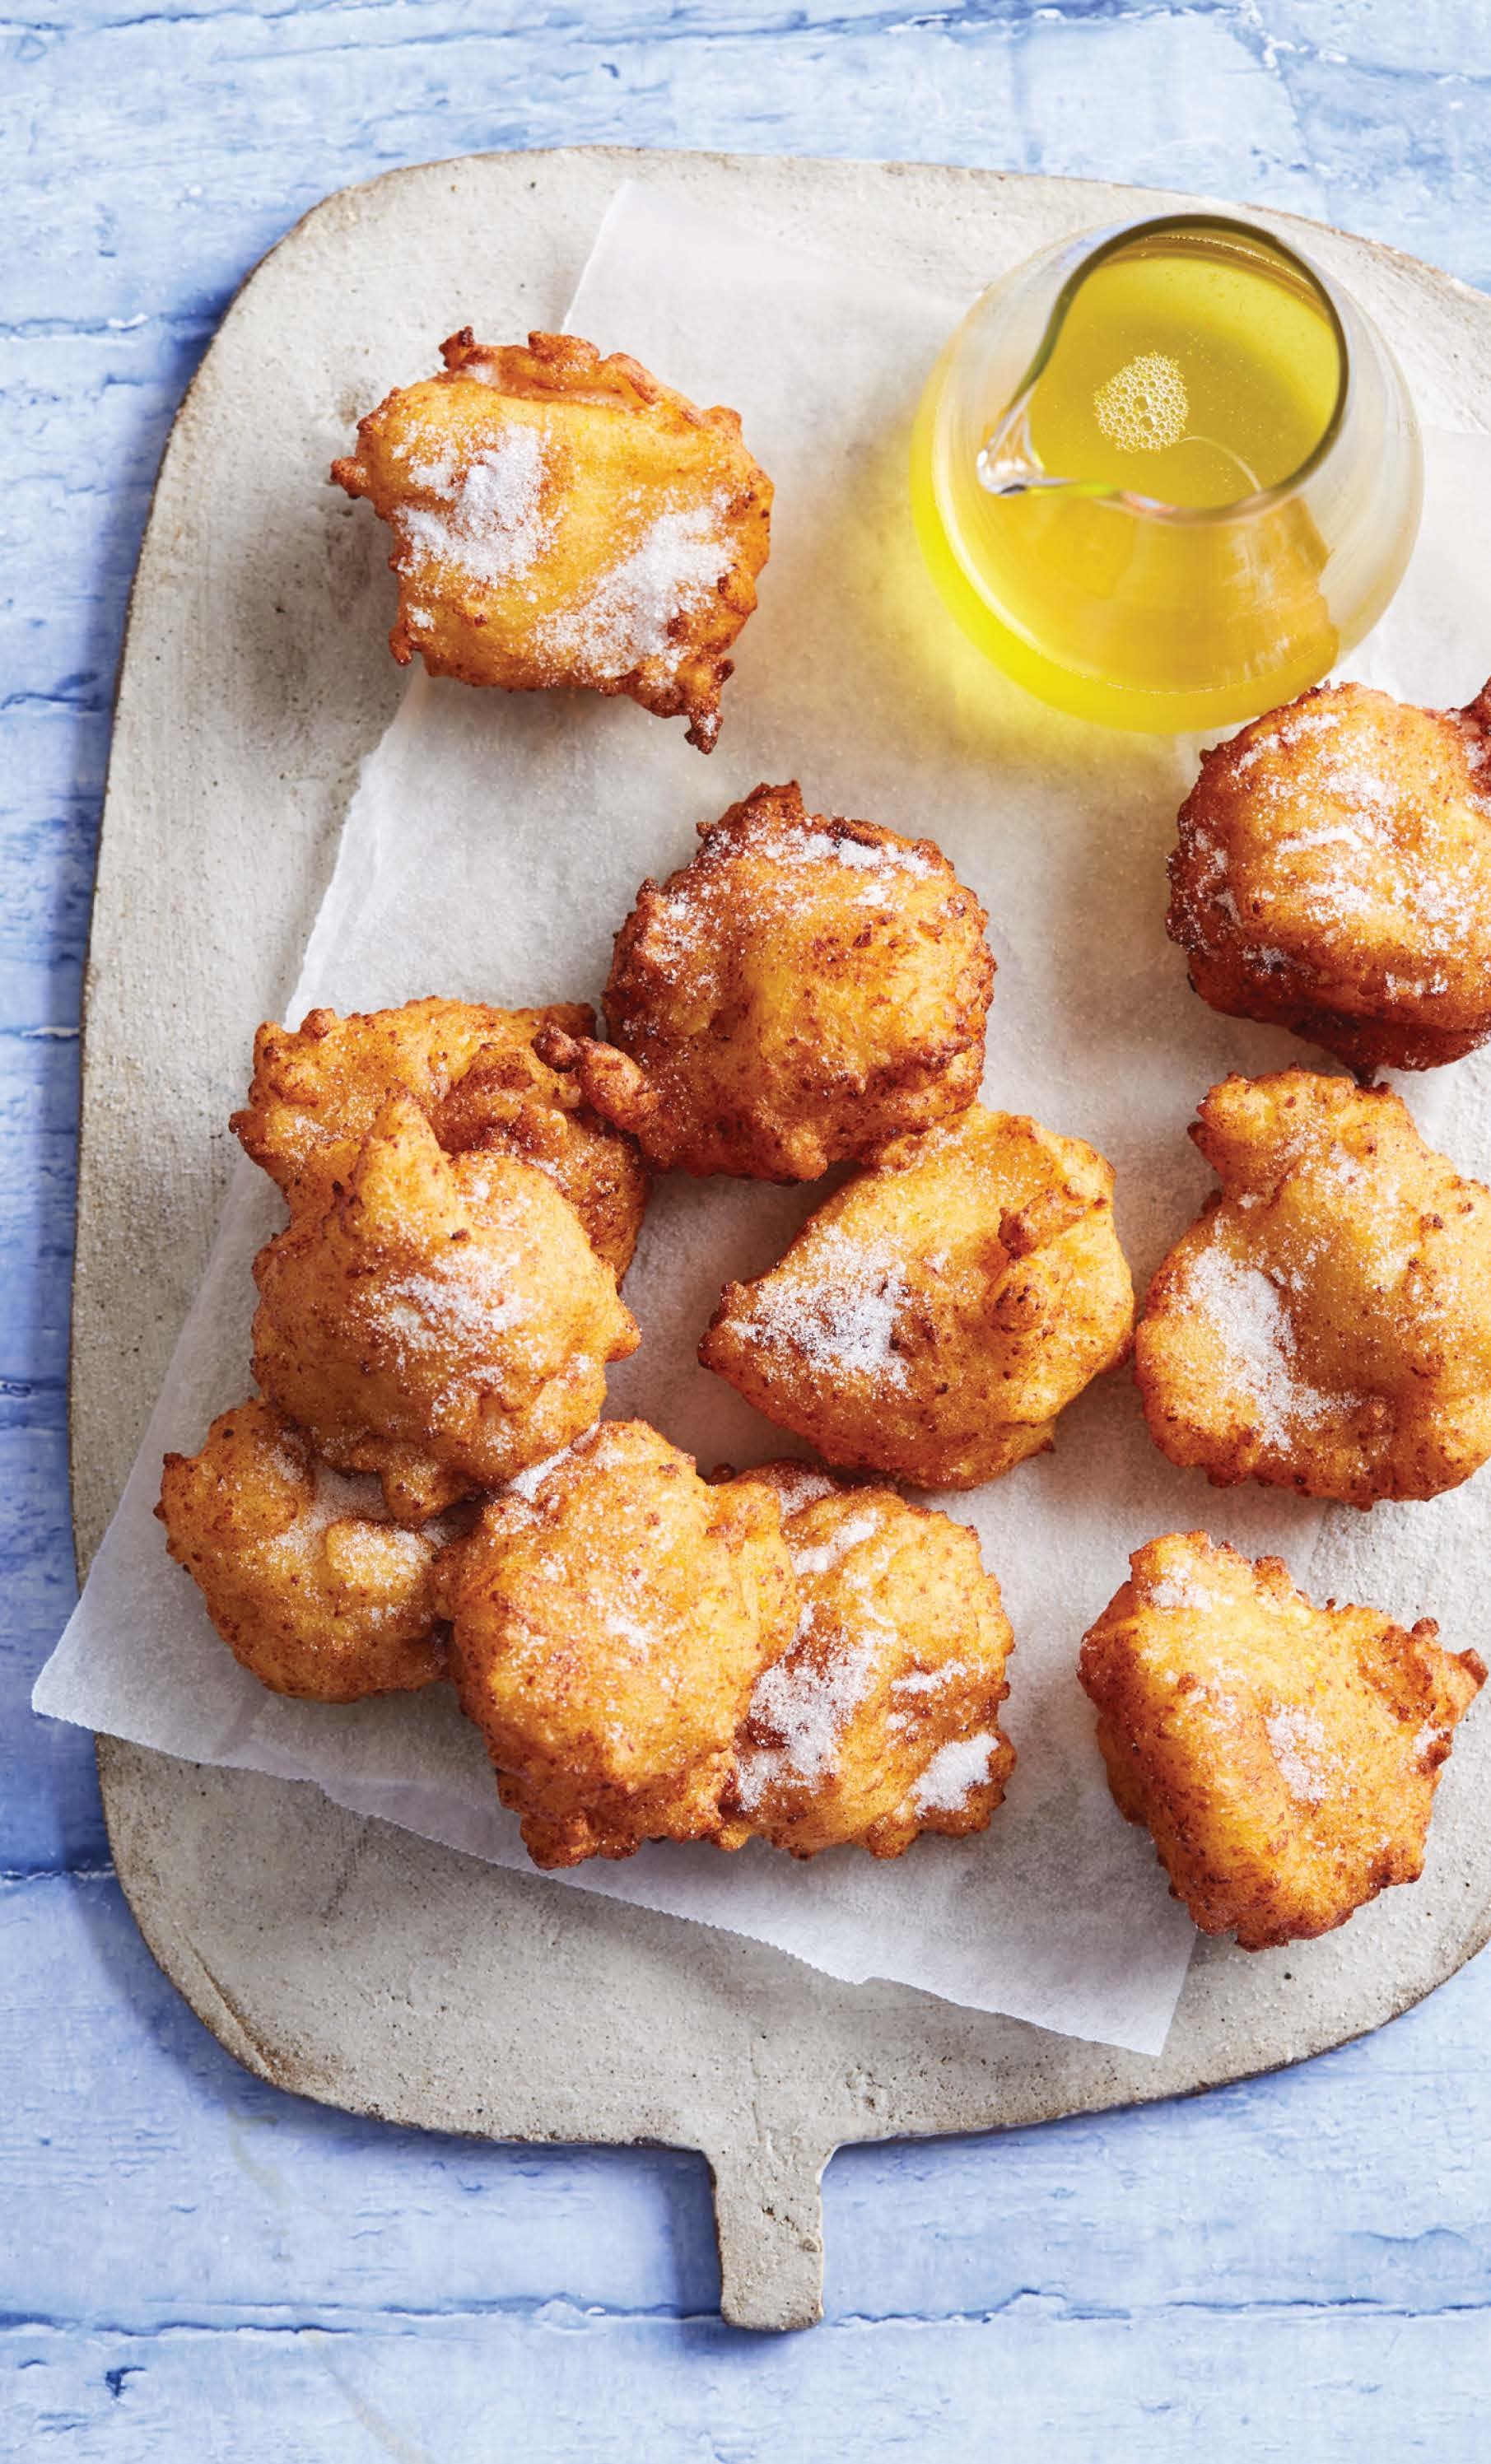 Sweet ricotta fritters with orange-honey syrup